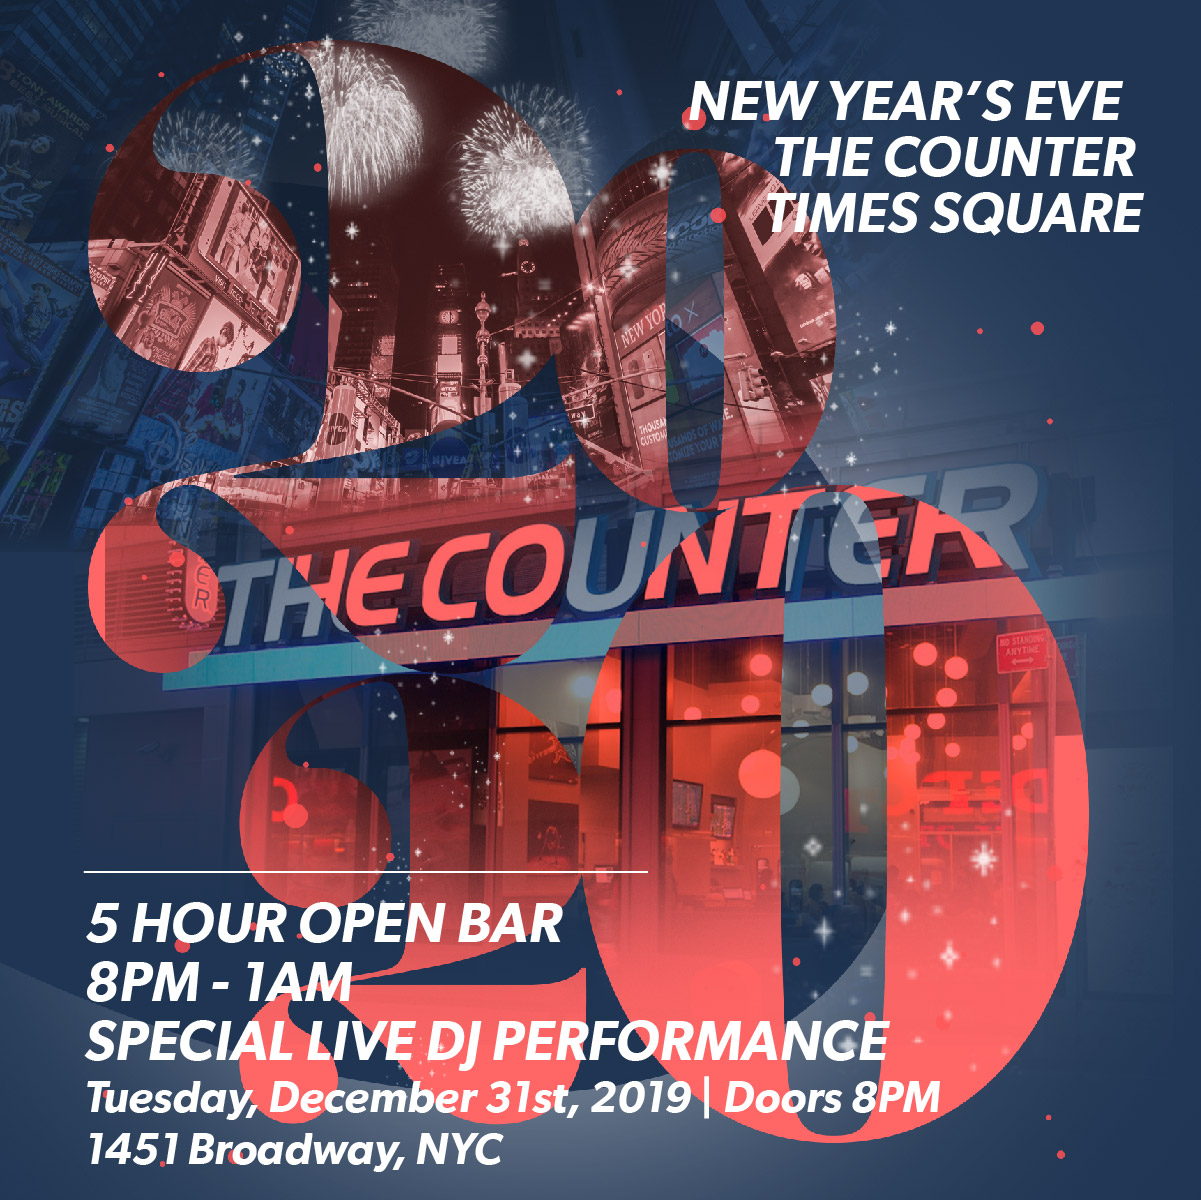 The Counter NYE 2020